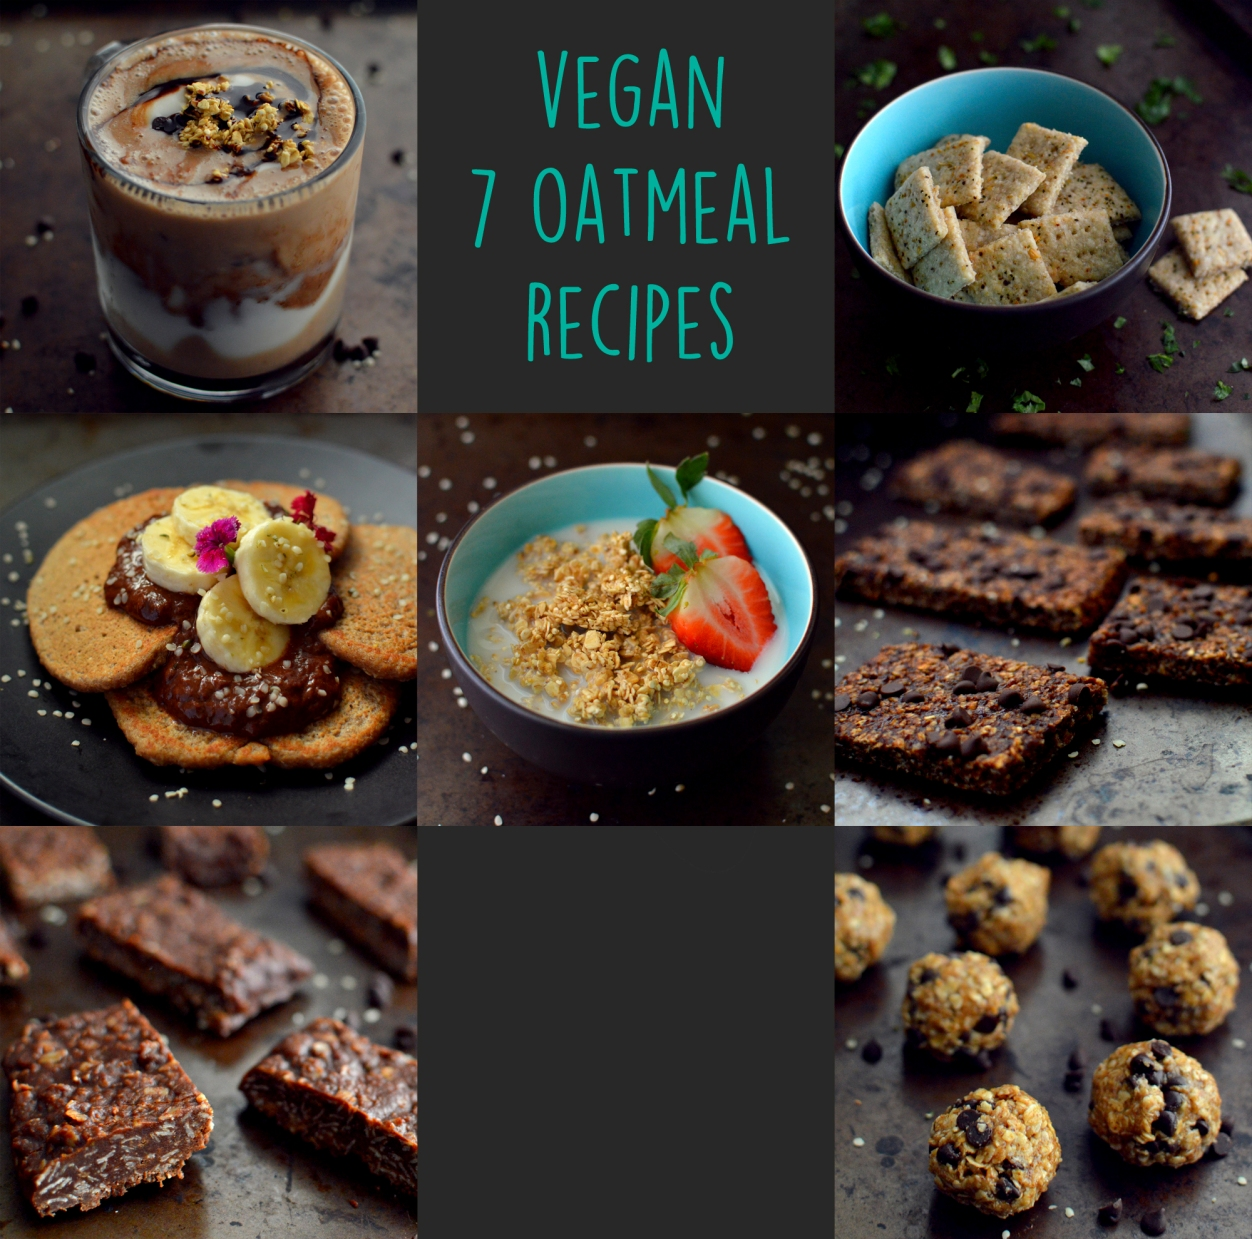 7 Vegan Oatmeal Recipes - More Than Breakfast - Rich Bitch Cooking Blog.jpg